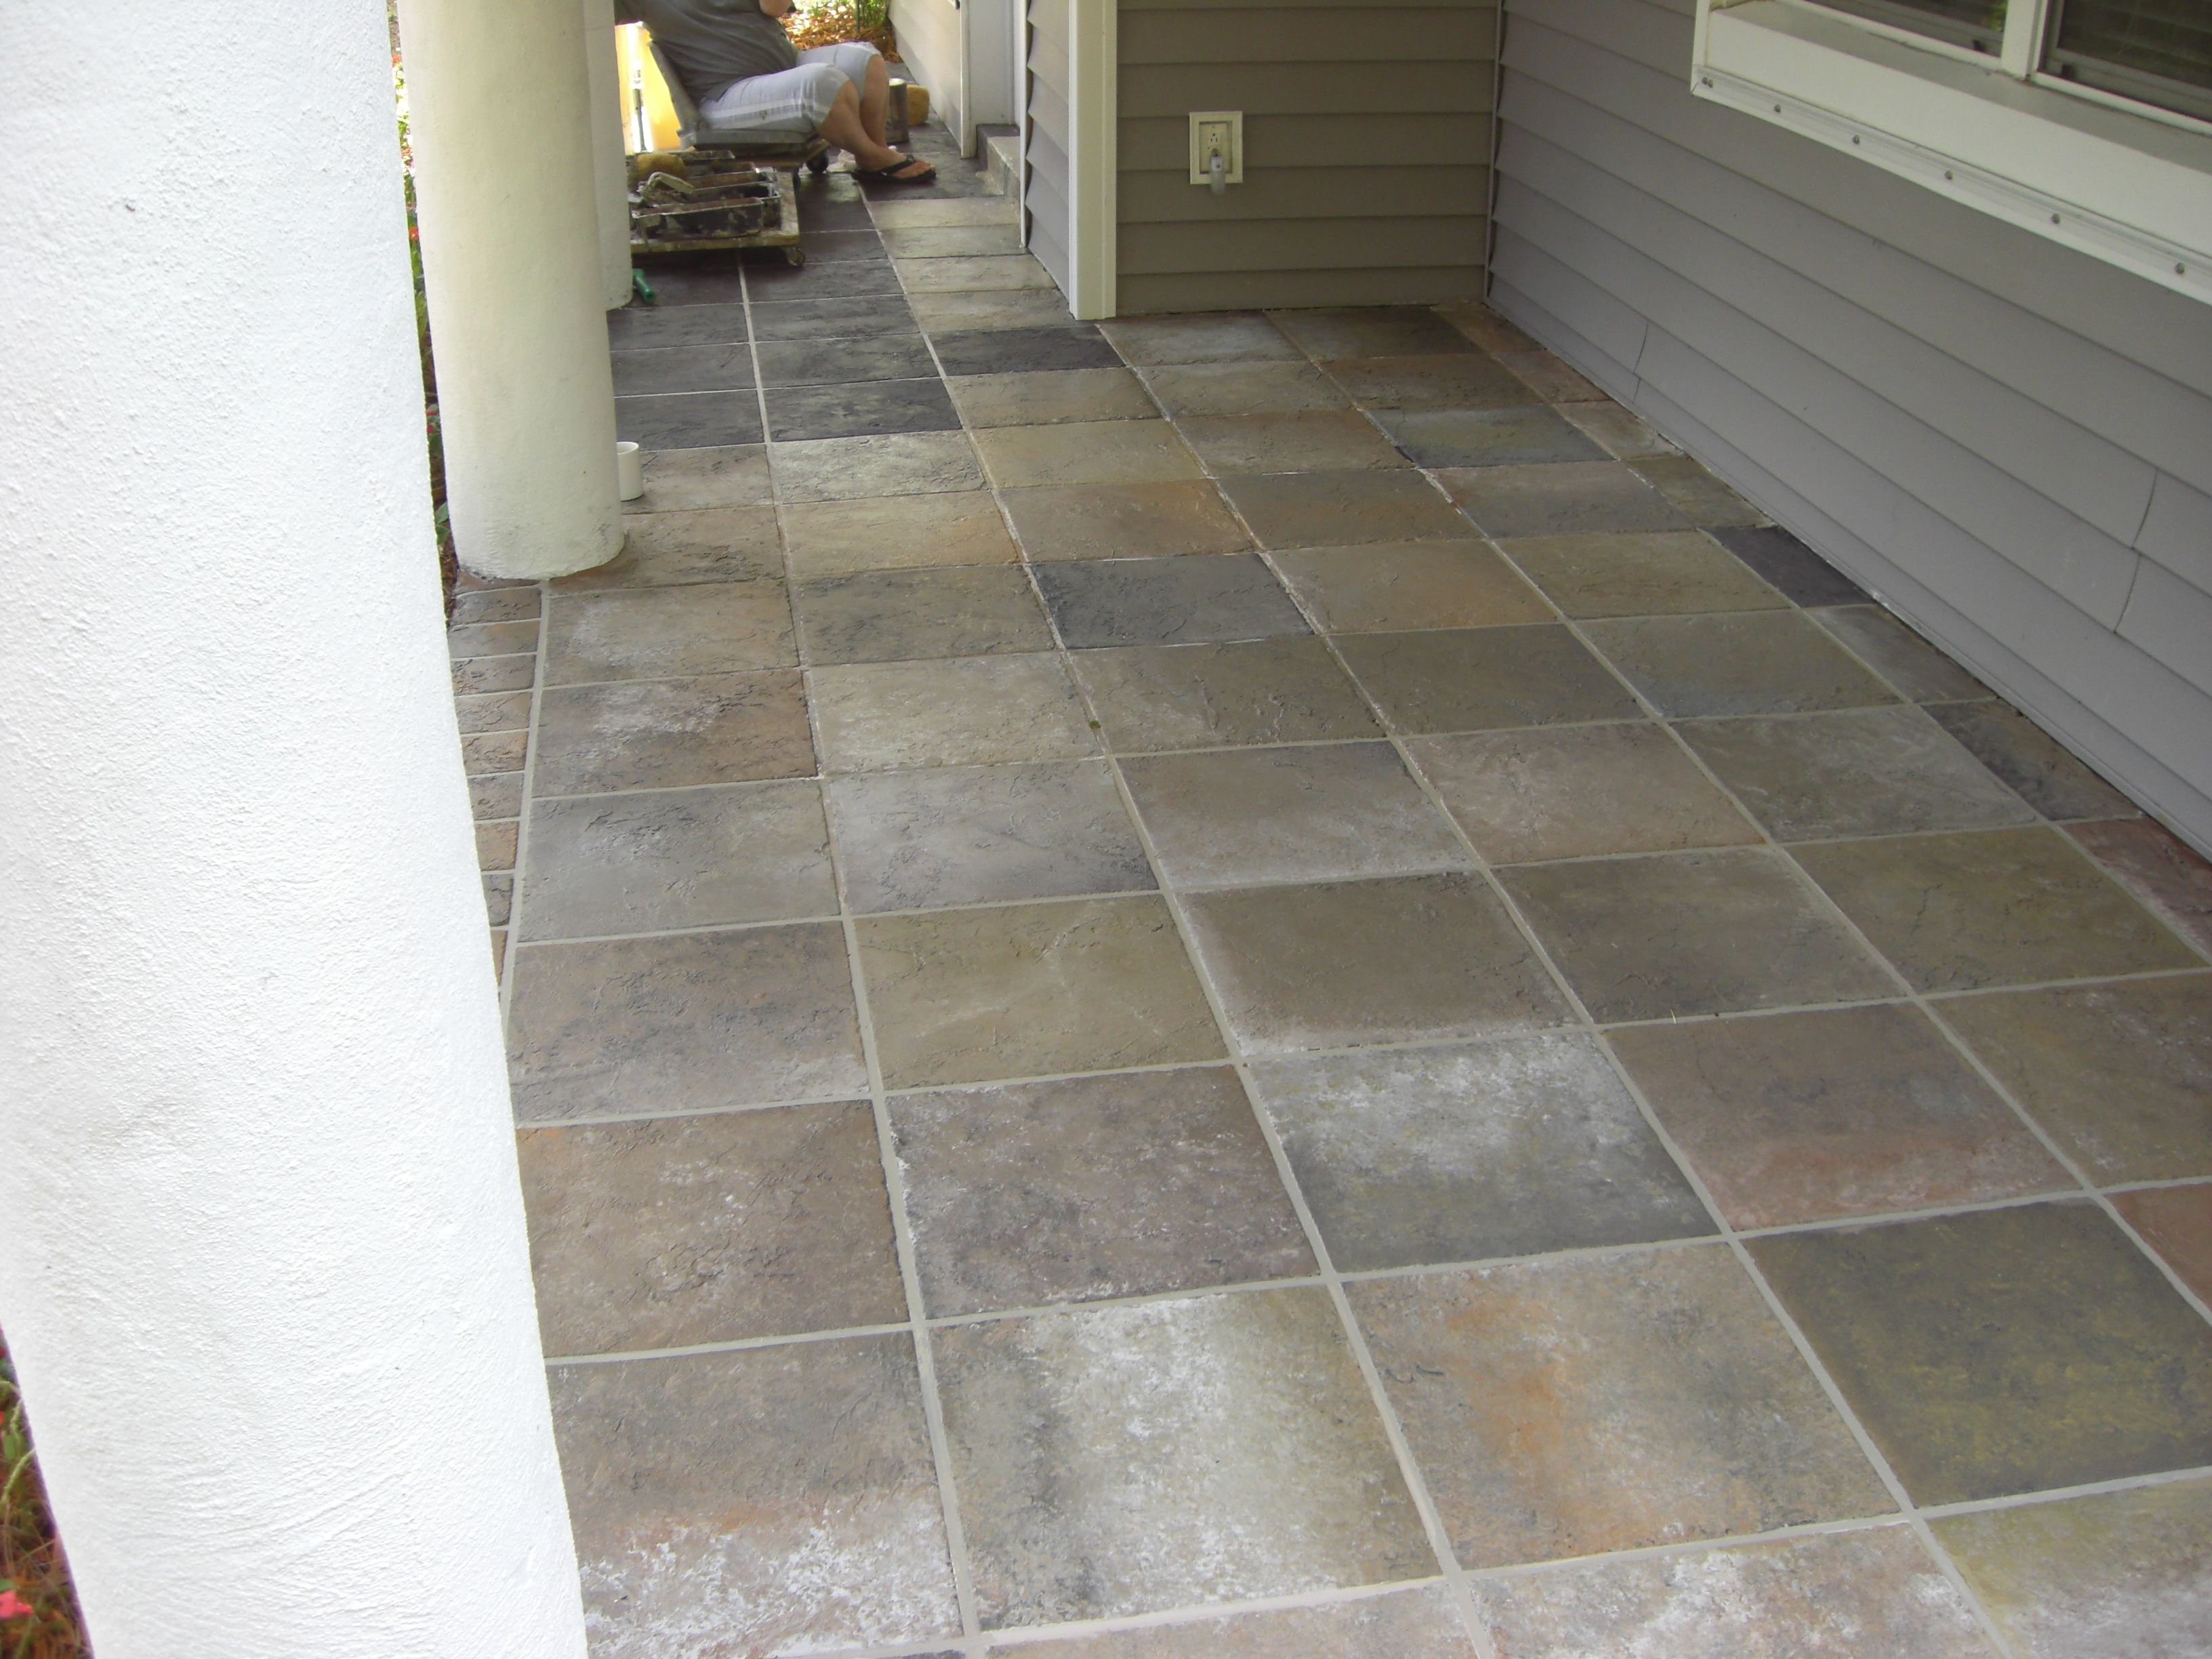 Painted Concrete To Look Like Tile Patio Tiles